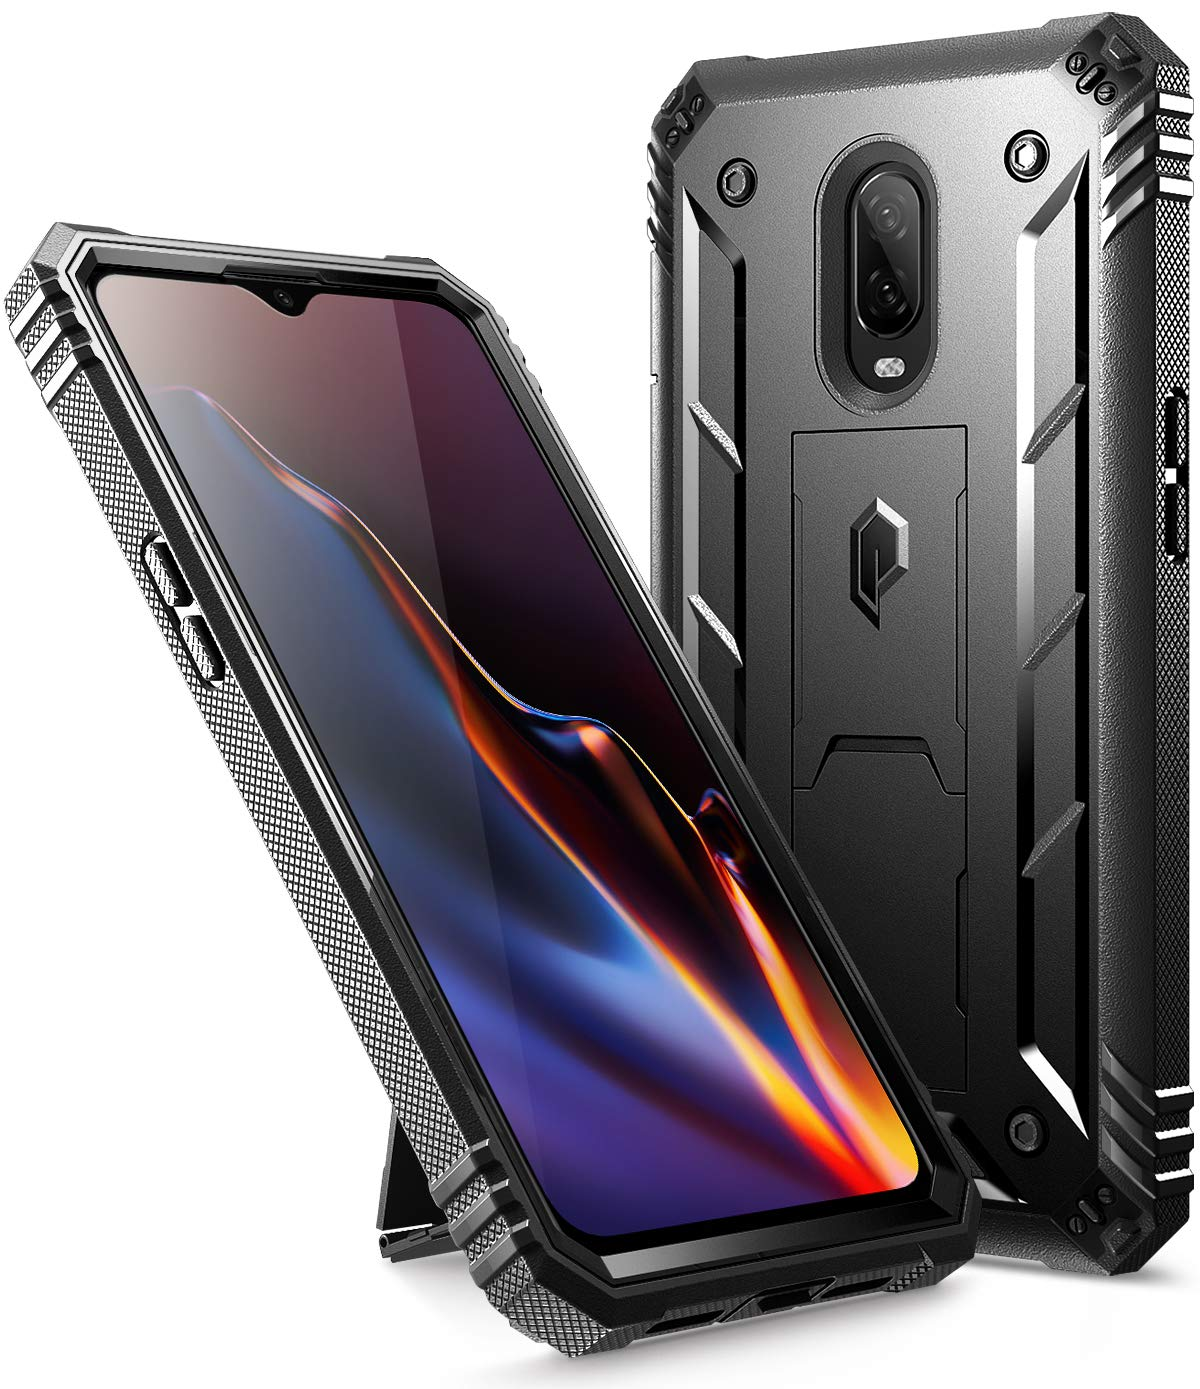 hot sale online 5e240 a9fbe POETIC OnePlus 6T Rugged Case, Revolution [360 Degree Protection] Full-Body  Rugged Heavy Duty Case with [Built-in-Screen Protector] for OnePlus 6T ...